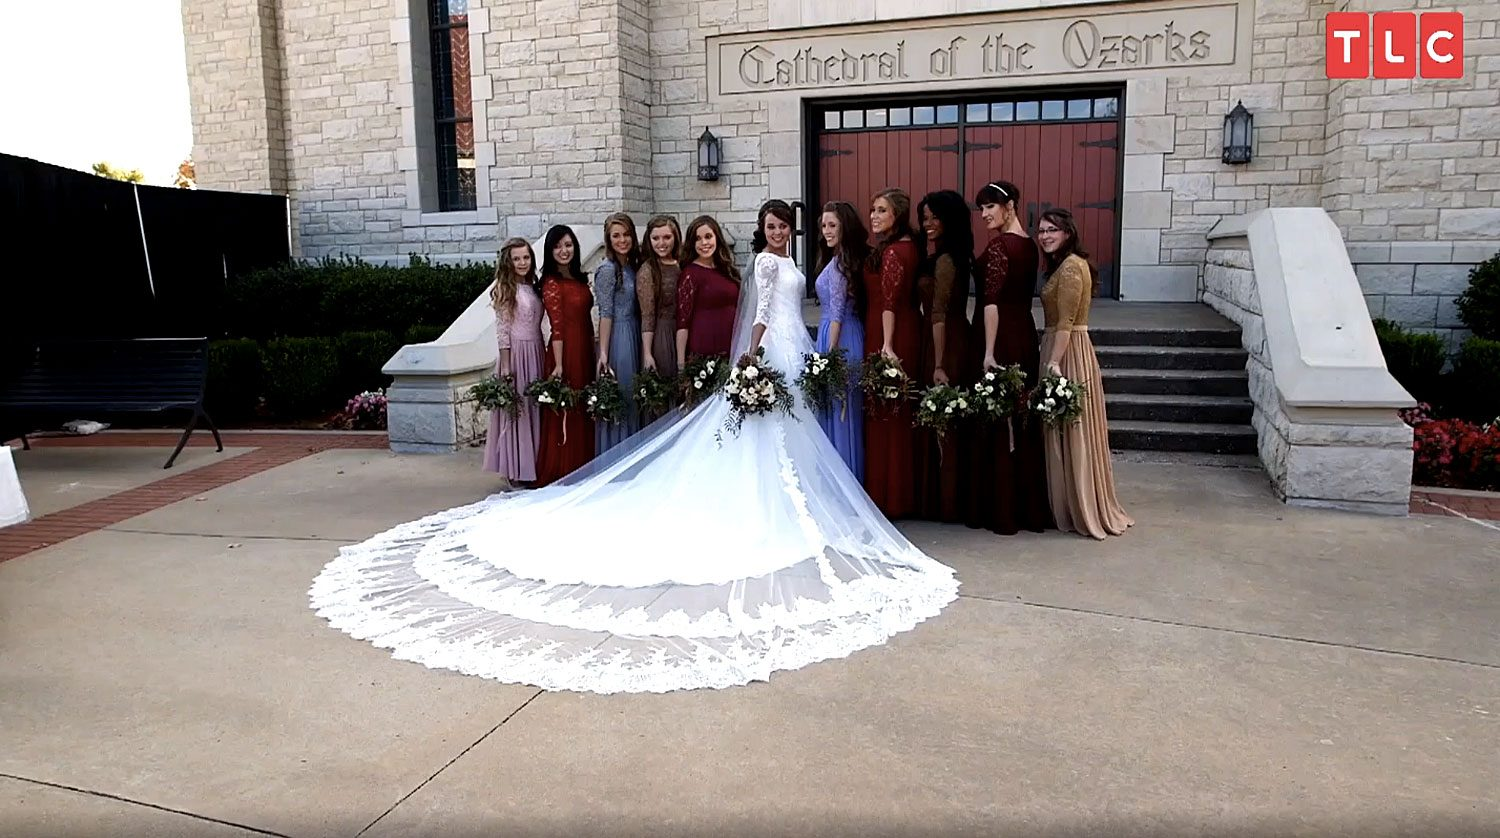 Jinger Duggar Wedding Dress.Jinger Duggar S Wedding Dress Designer On Why Train Was So Long